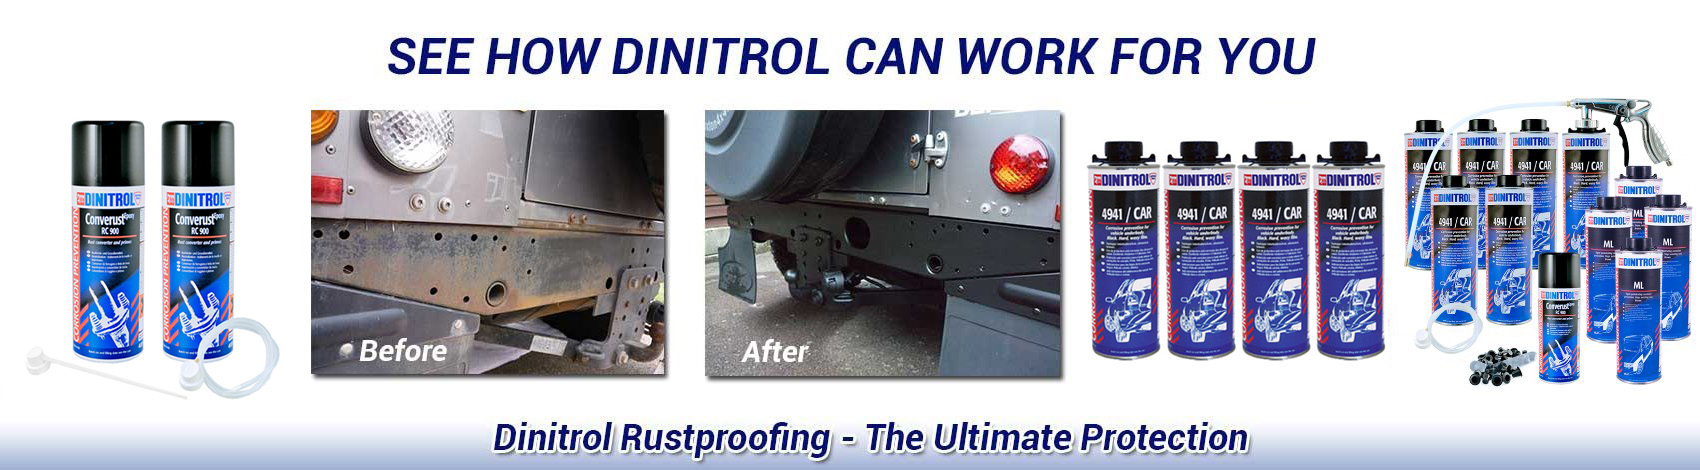 Dinitrol rust proofing kits used to treat rust and protect